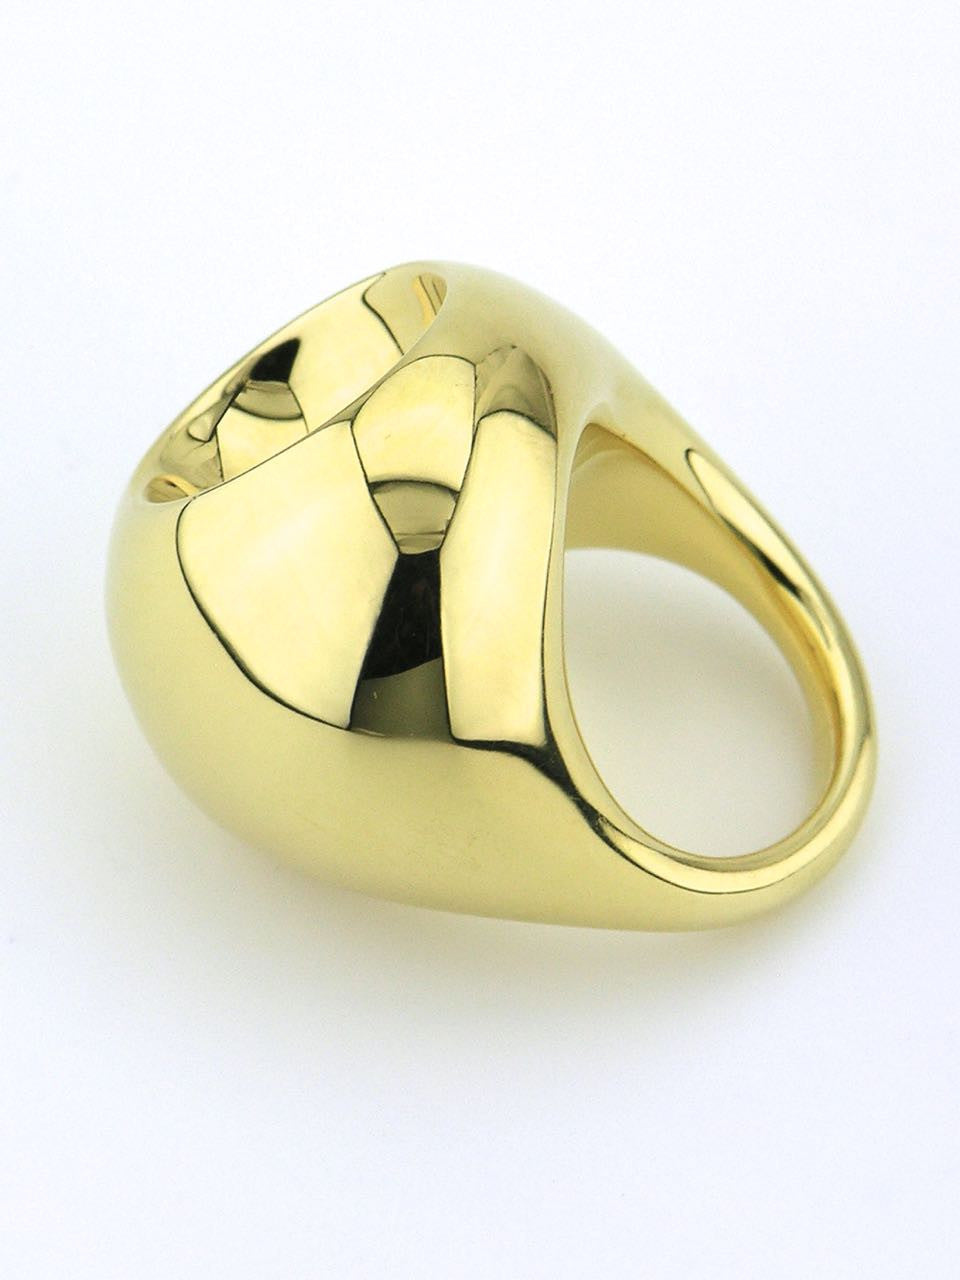 Georg Jensen 18ct yellow gold cave dress ring - design 1509